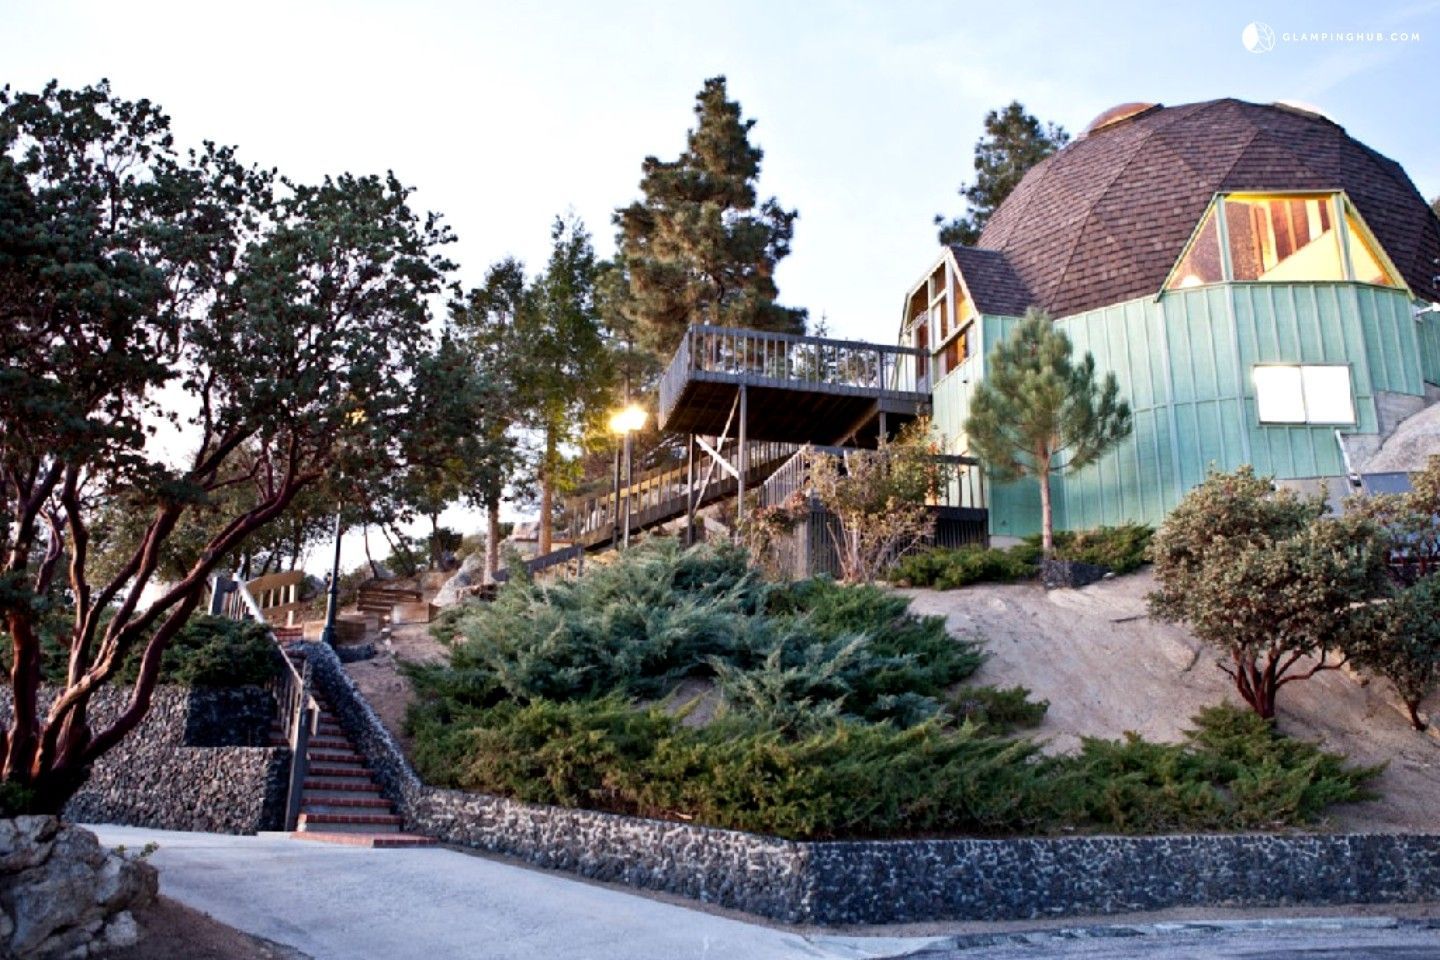 Remarkable Dome Vacation Rental In Idyllwild California Idyllwild Vacation Rental Dome House